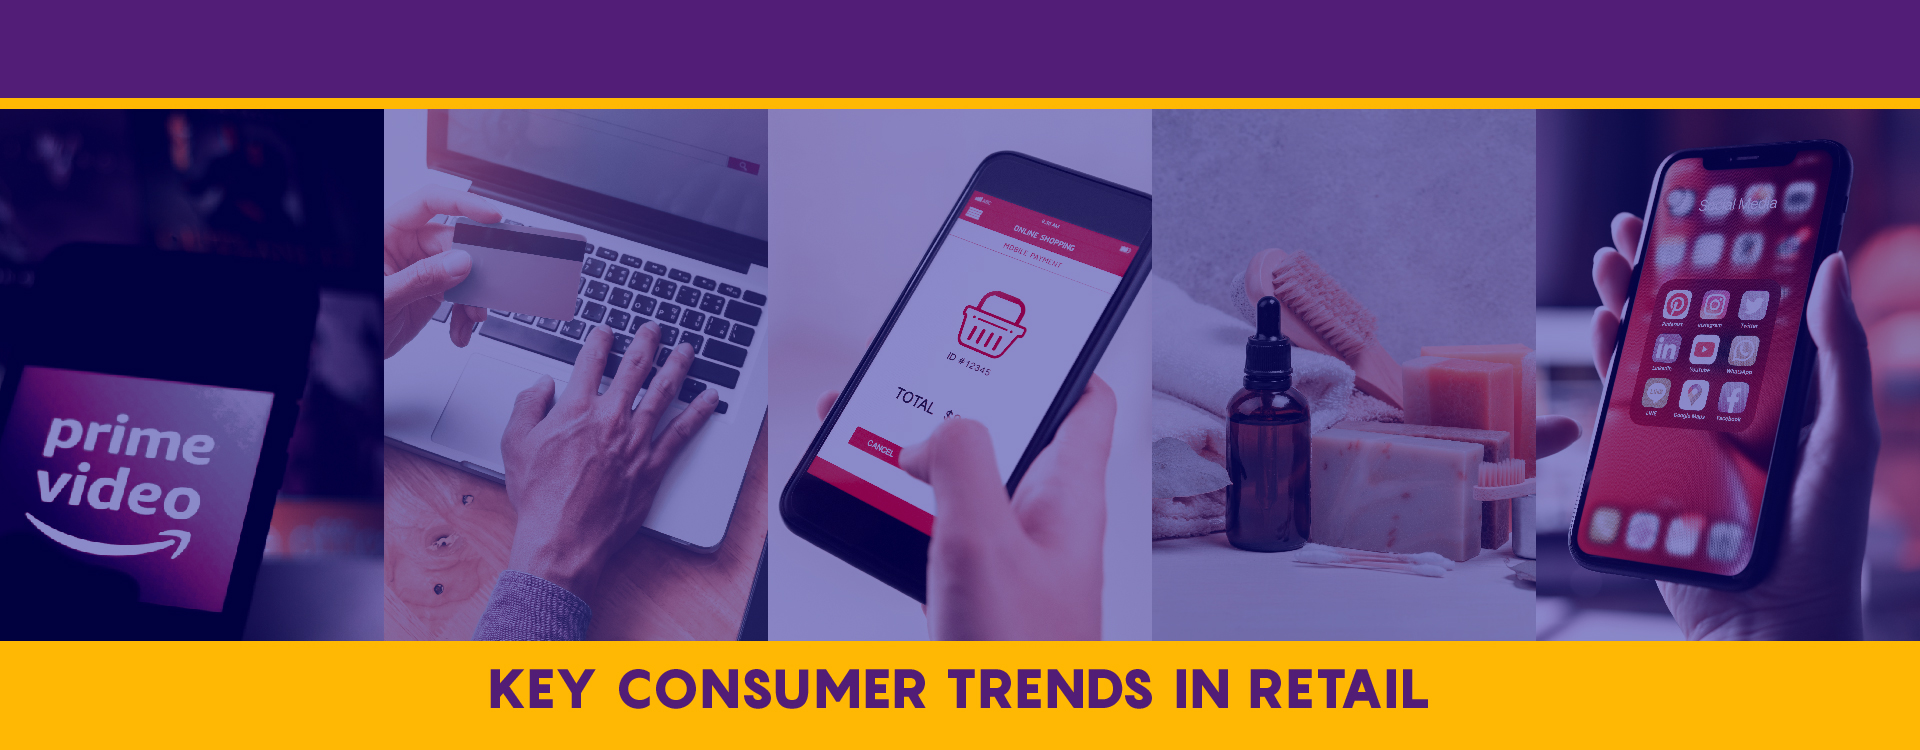 Retail Sector in India trends to watch and plan according to